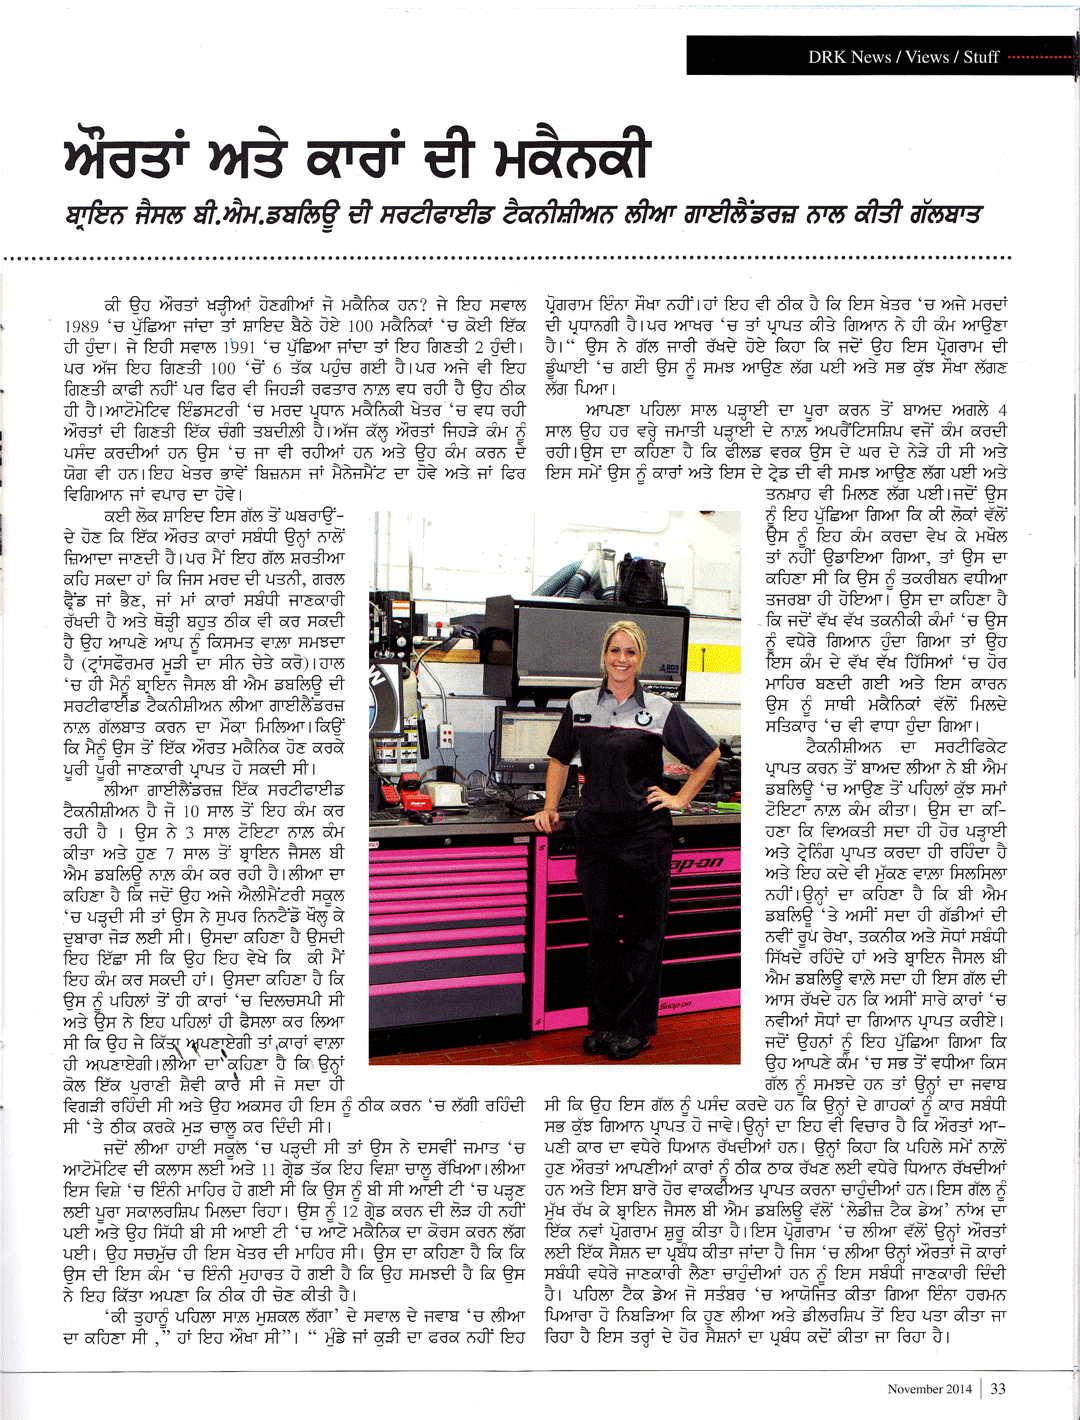 Review in DRK Magazine